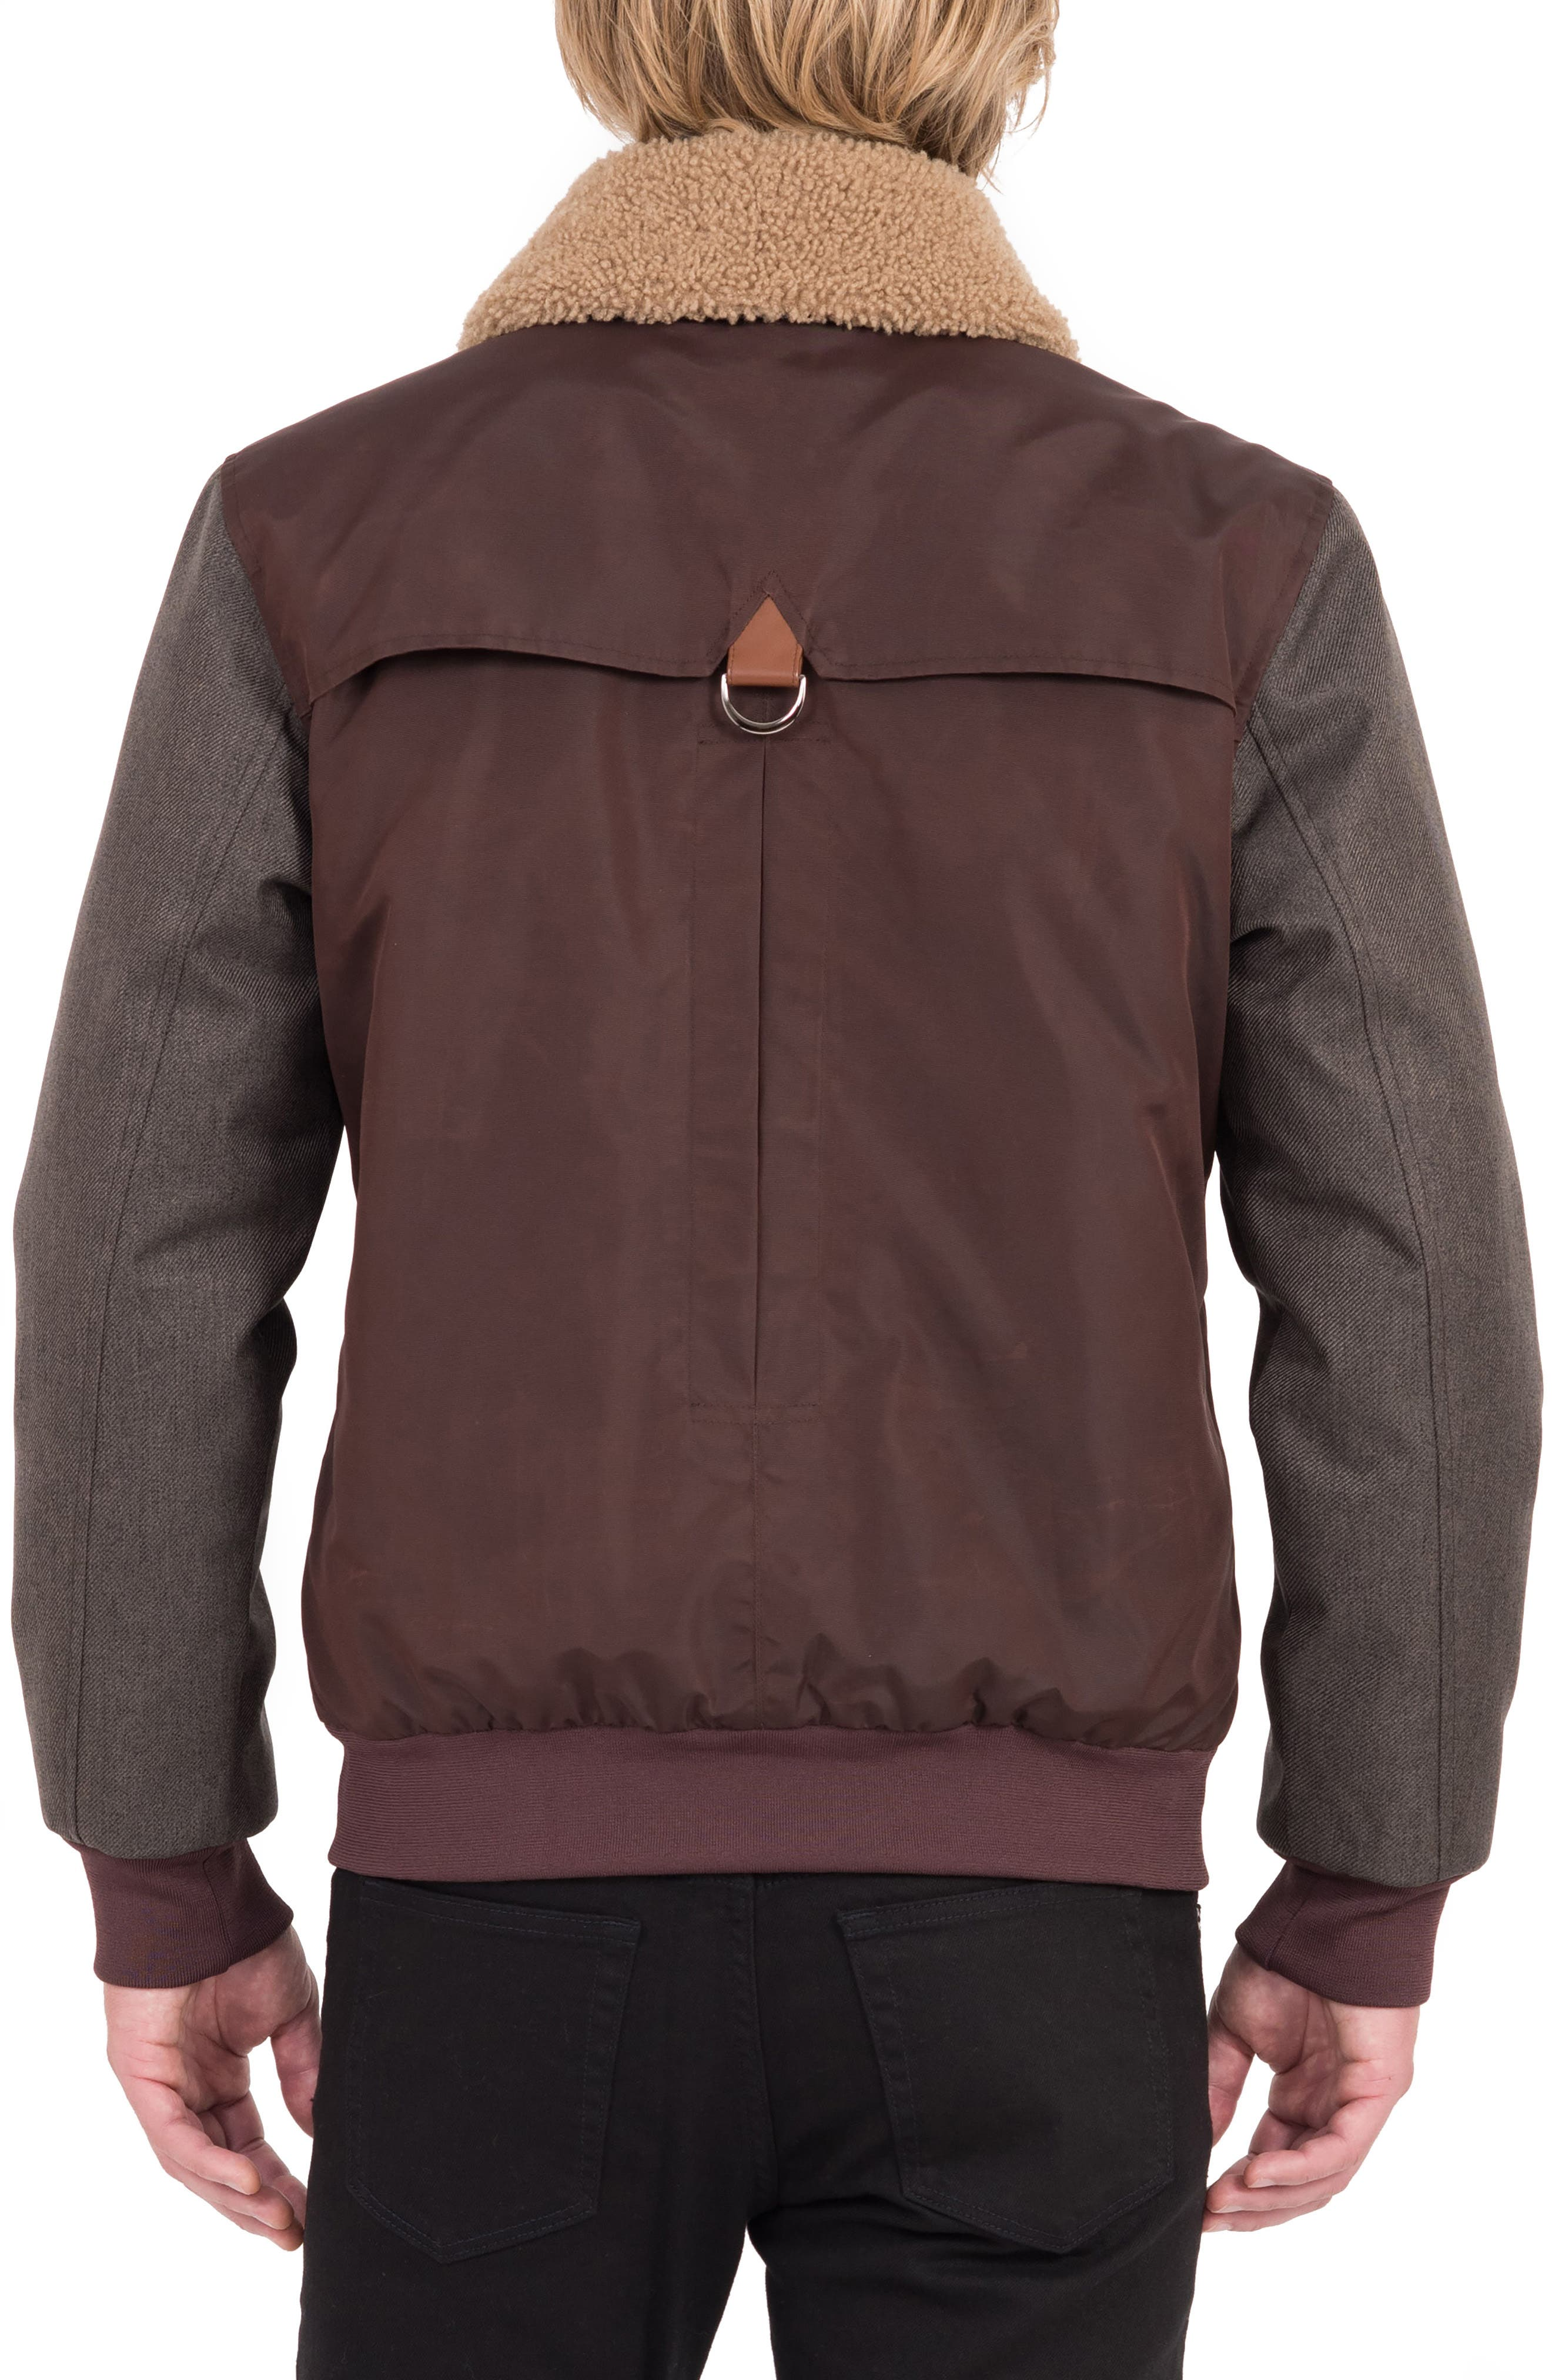 Waxed Nylon Jacket with Faux Shearling Collar,                             Alternate thumbnail 3, color,                             930